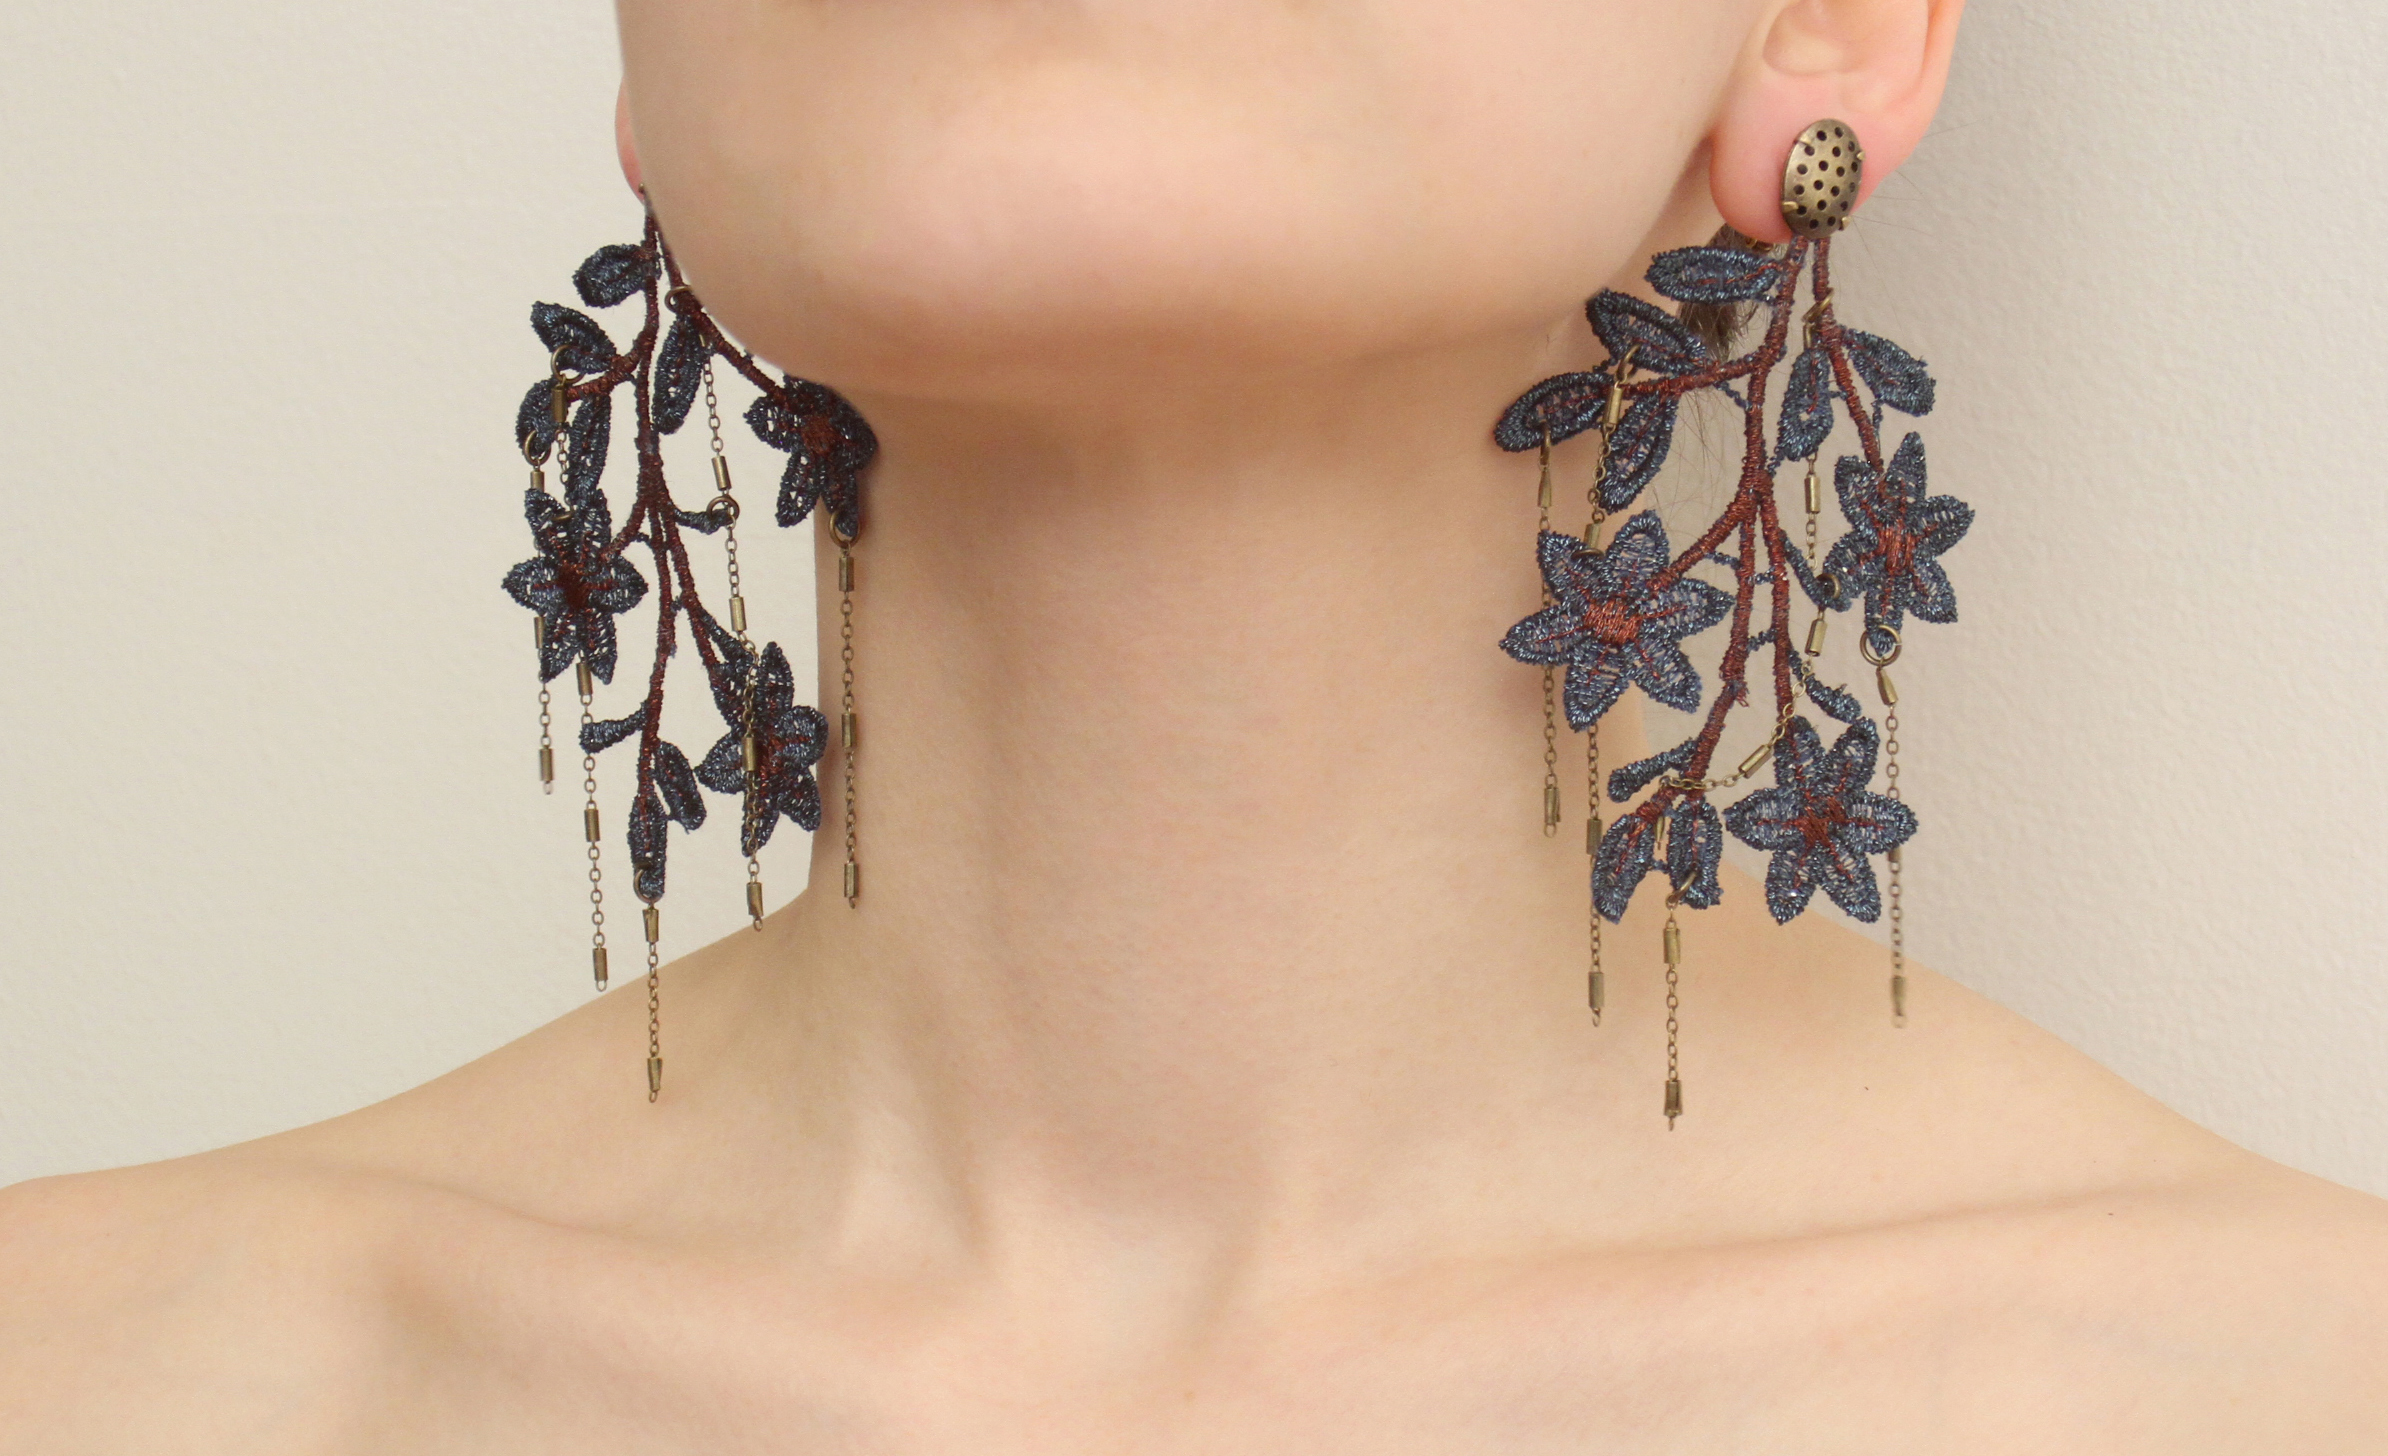 Seasons: Fall; long earings